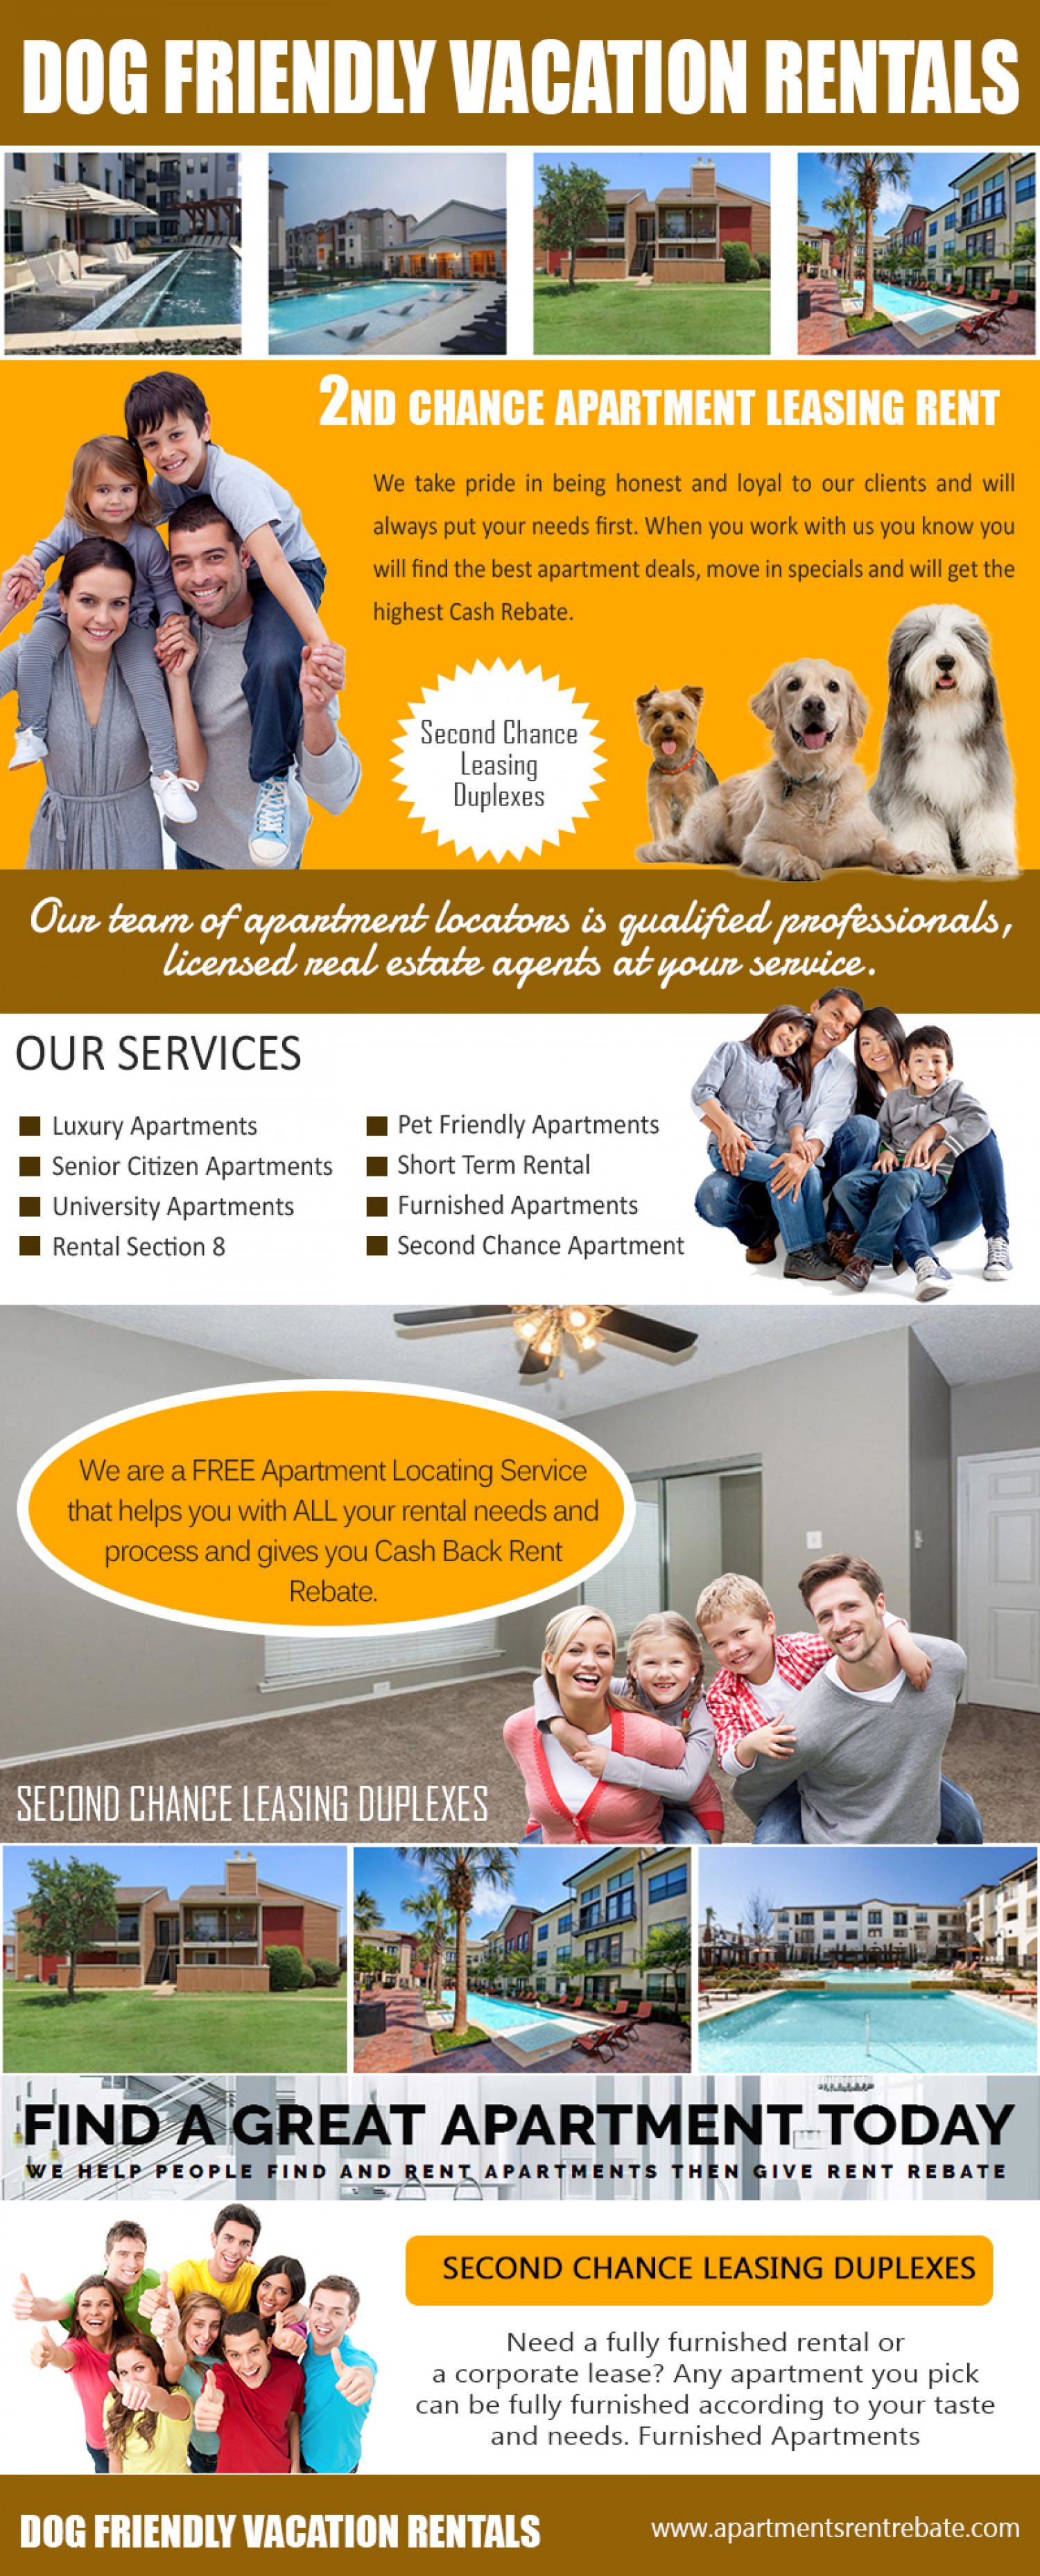 Dog Friendly Vacation Rentals Infographic